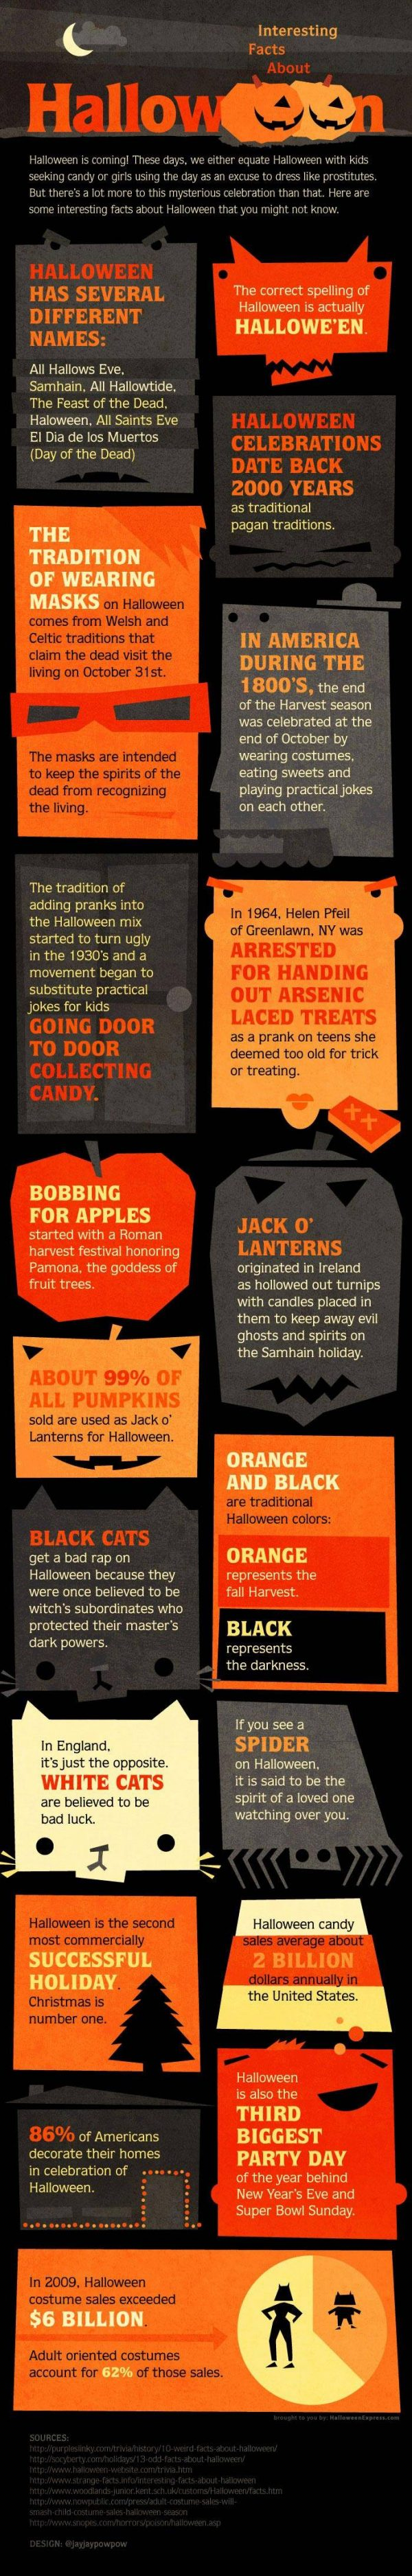 Interesting Facts About Halloween (Infographic)